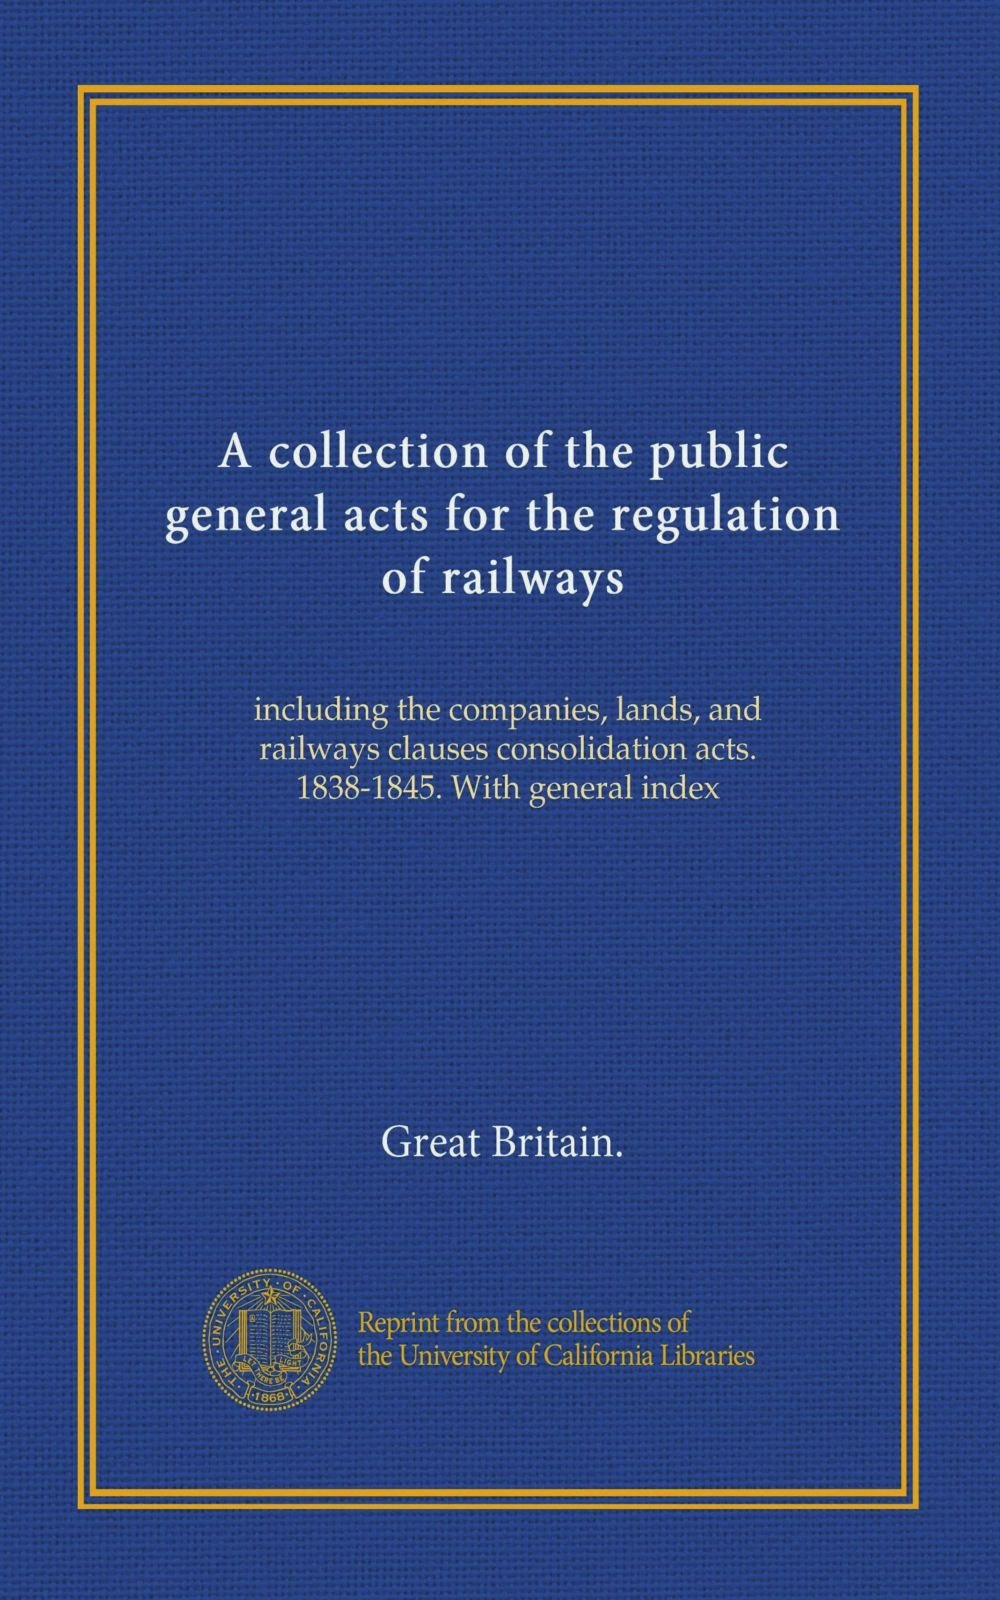 A collection of the public general acts for the regulation of railways: including the companies, lands, and railways clauses consolidation acts. 1838-1845. With general index